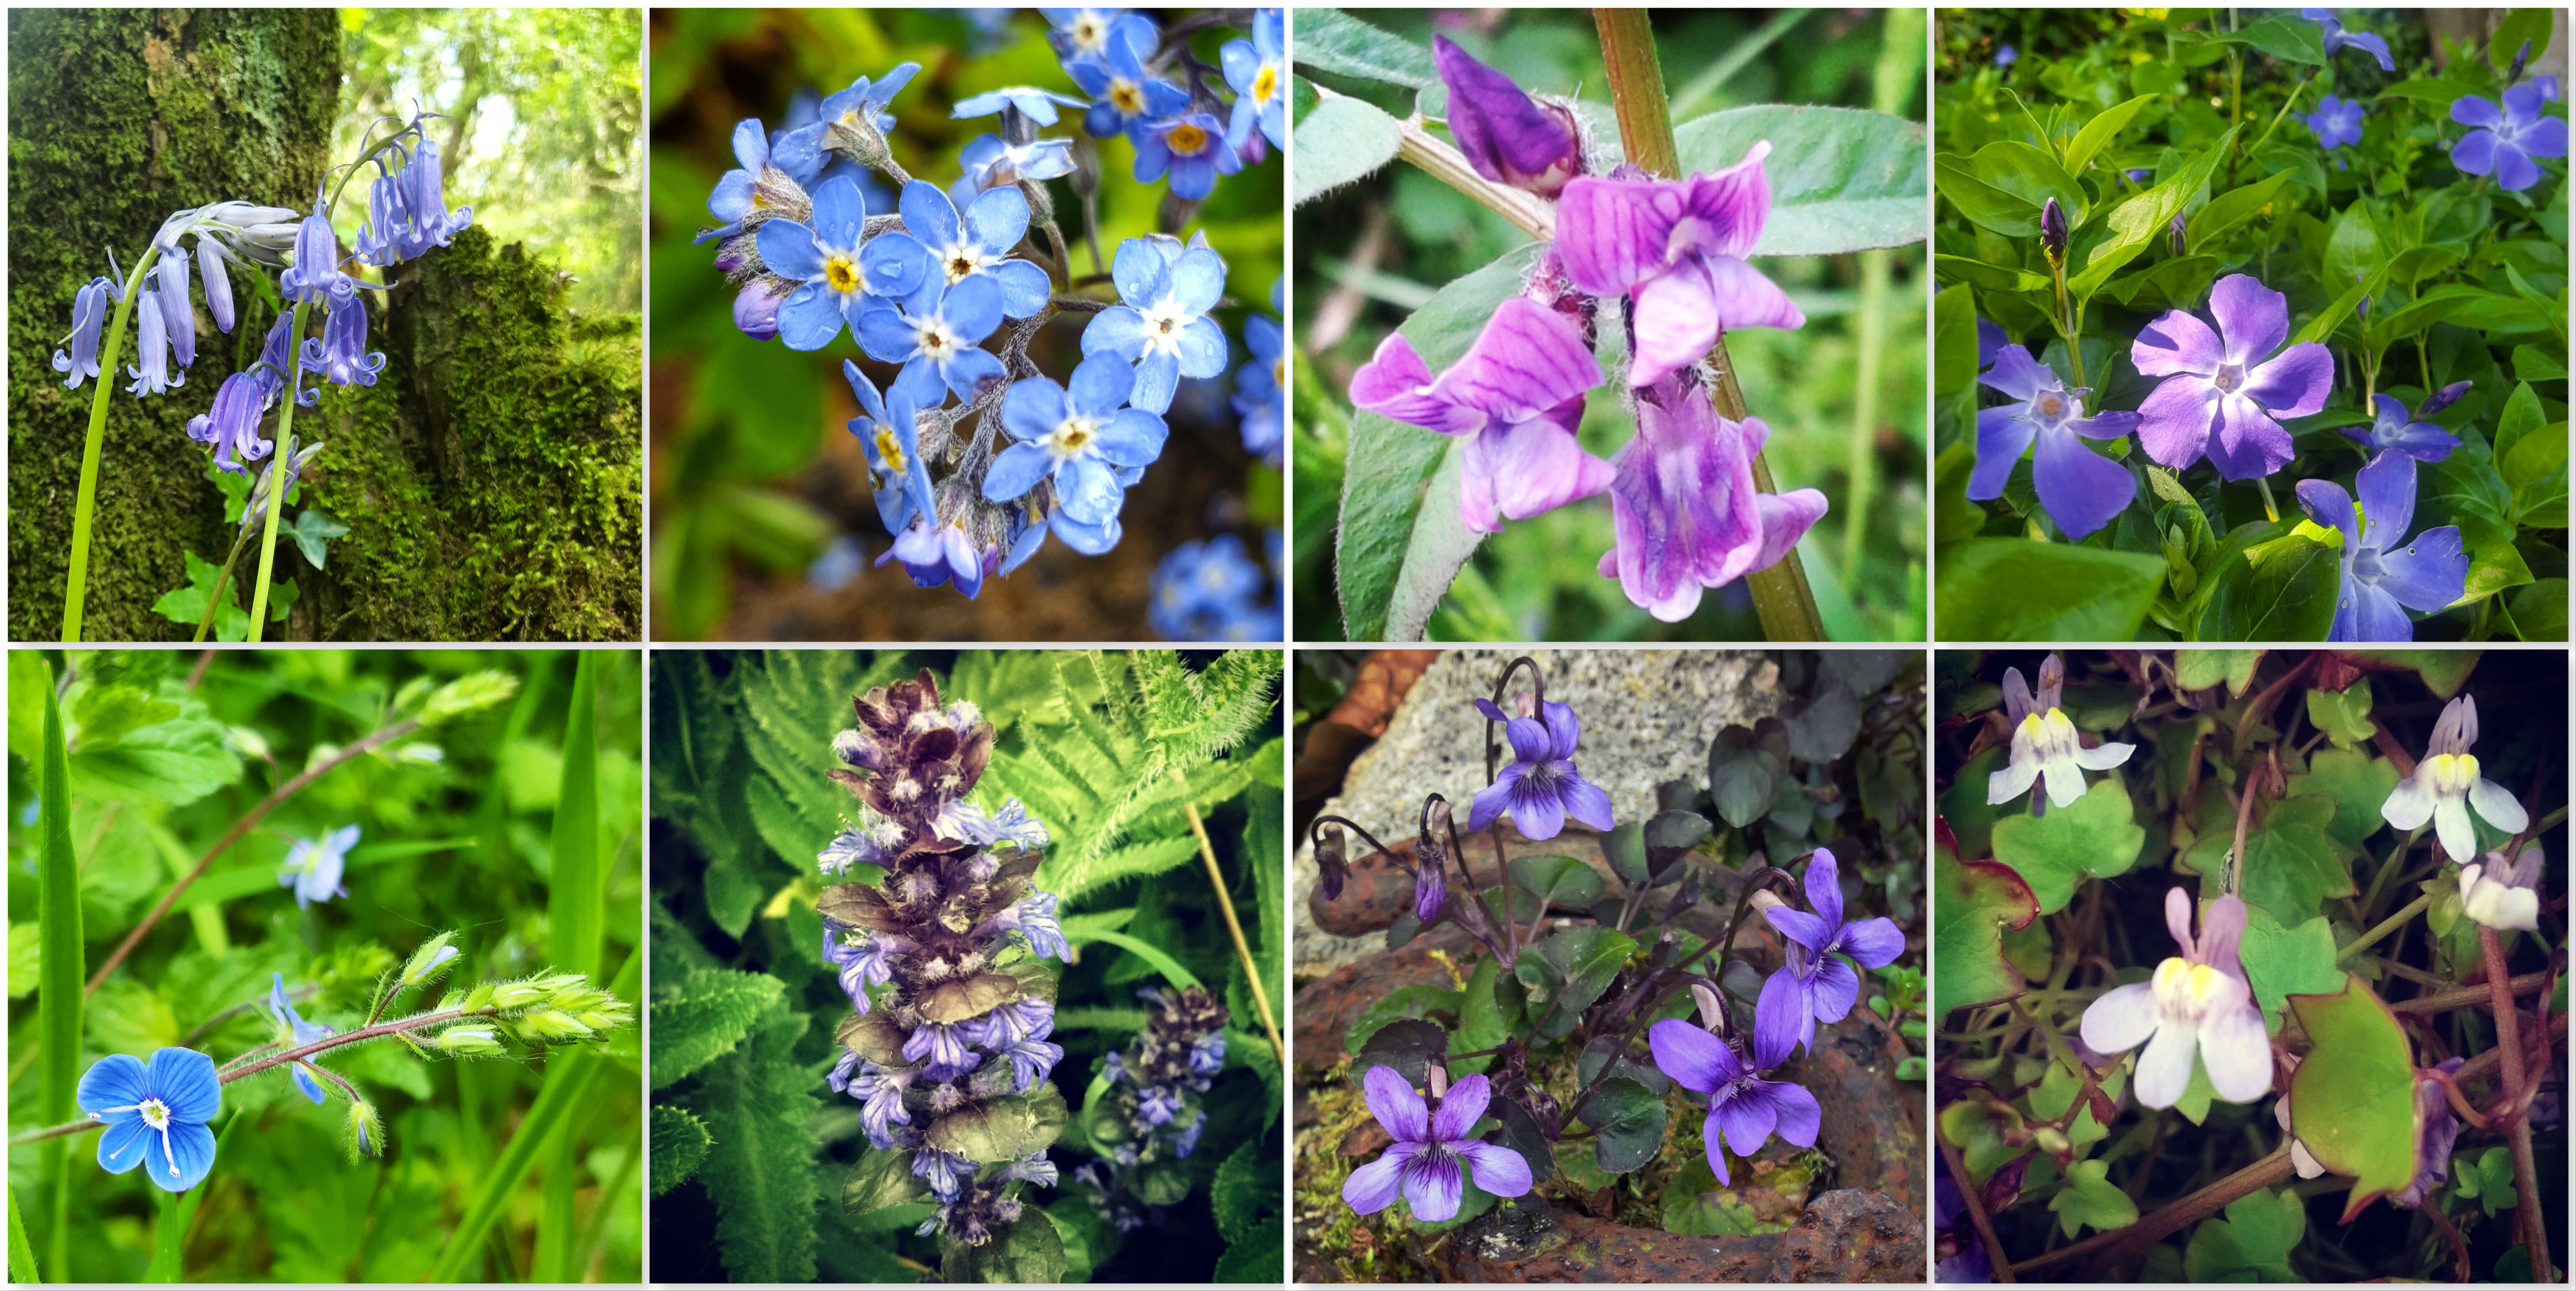 Bluebells - Forget-me-not - Purple Vetch - Vinca - Speedwell - Bugle - Wild Violet - Ivy Leaved Toadflax